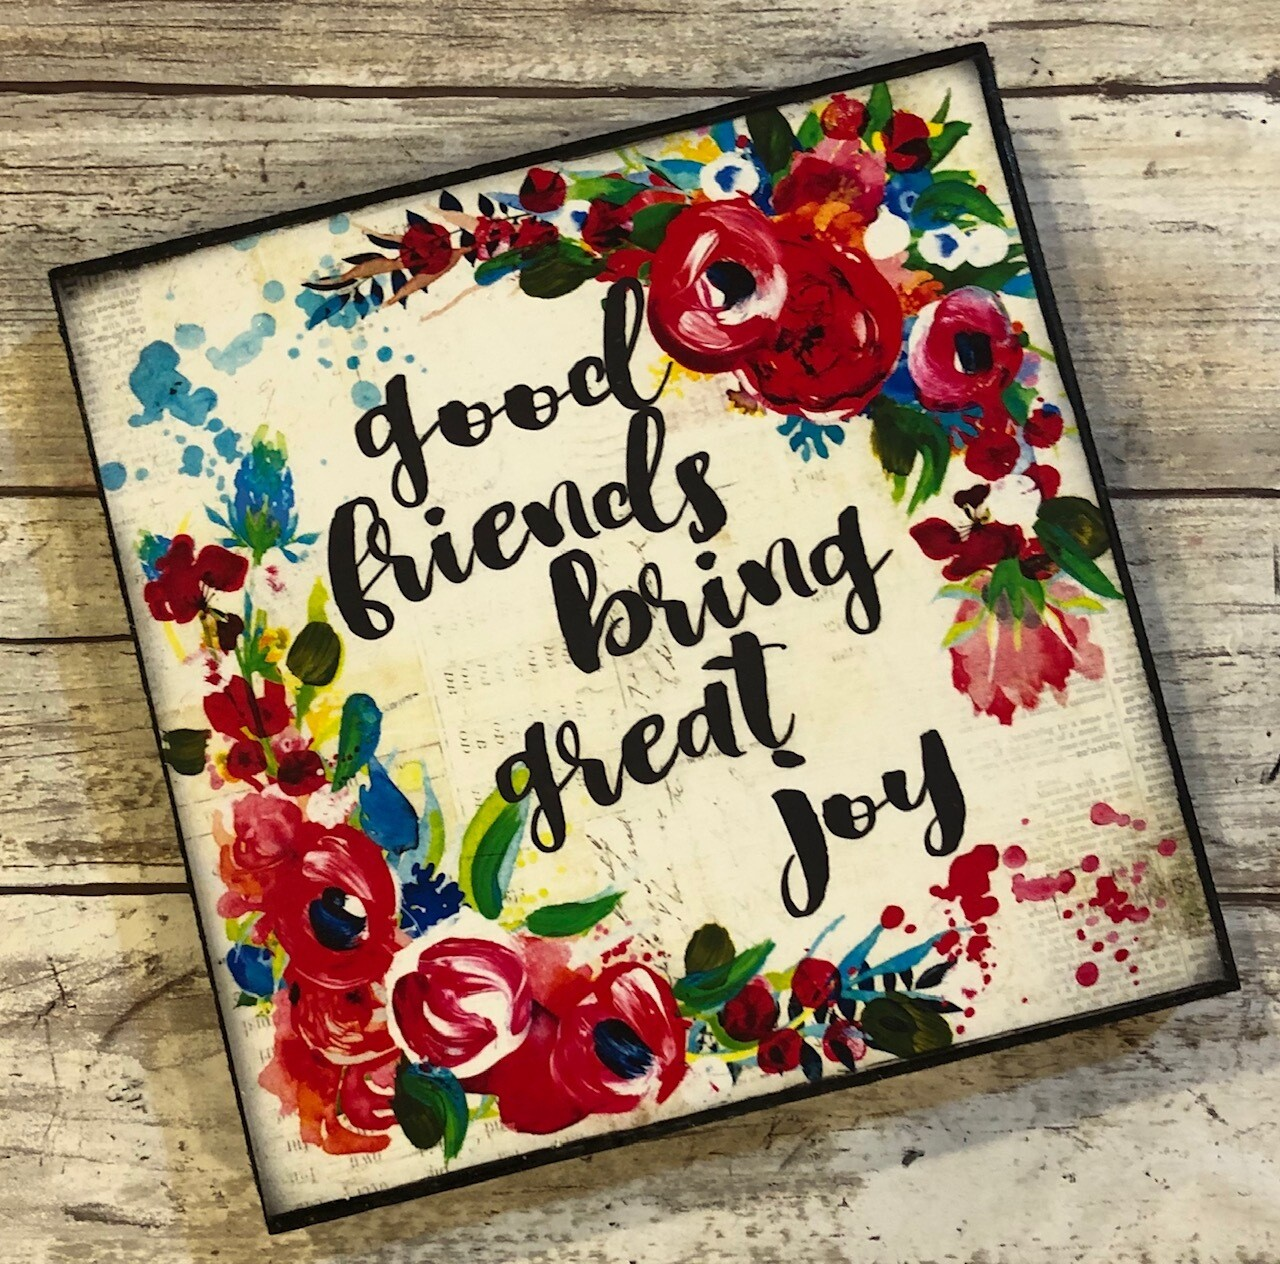 """Good friends bring great Joy"" 6x6 clearance"